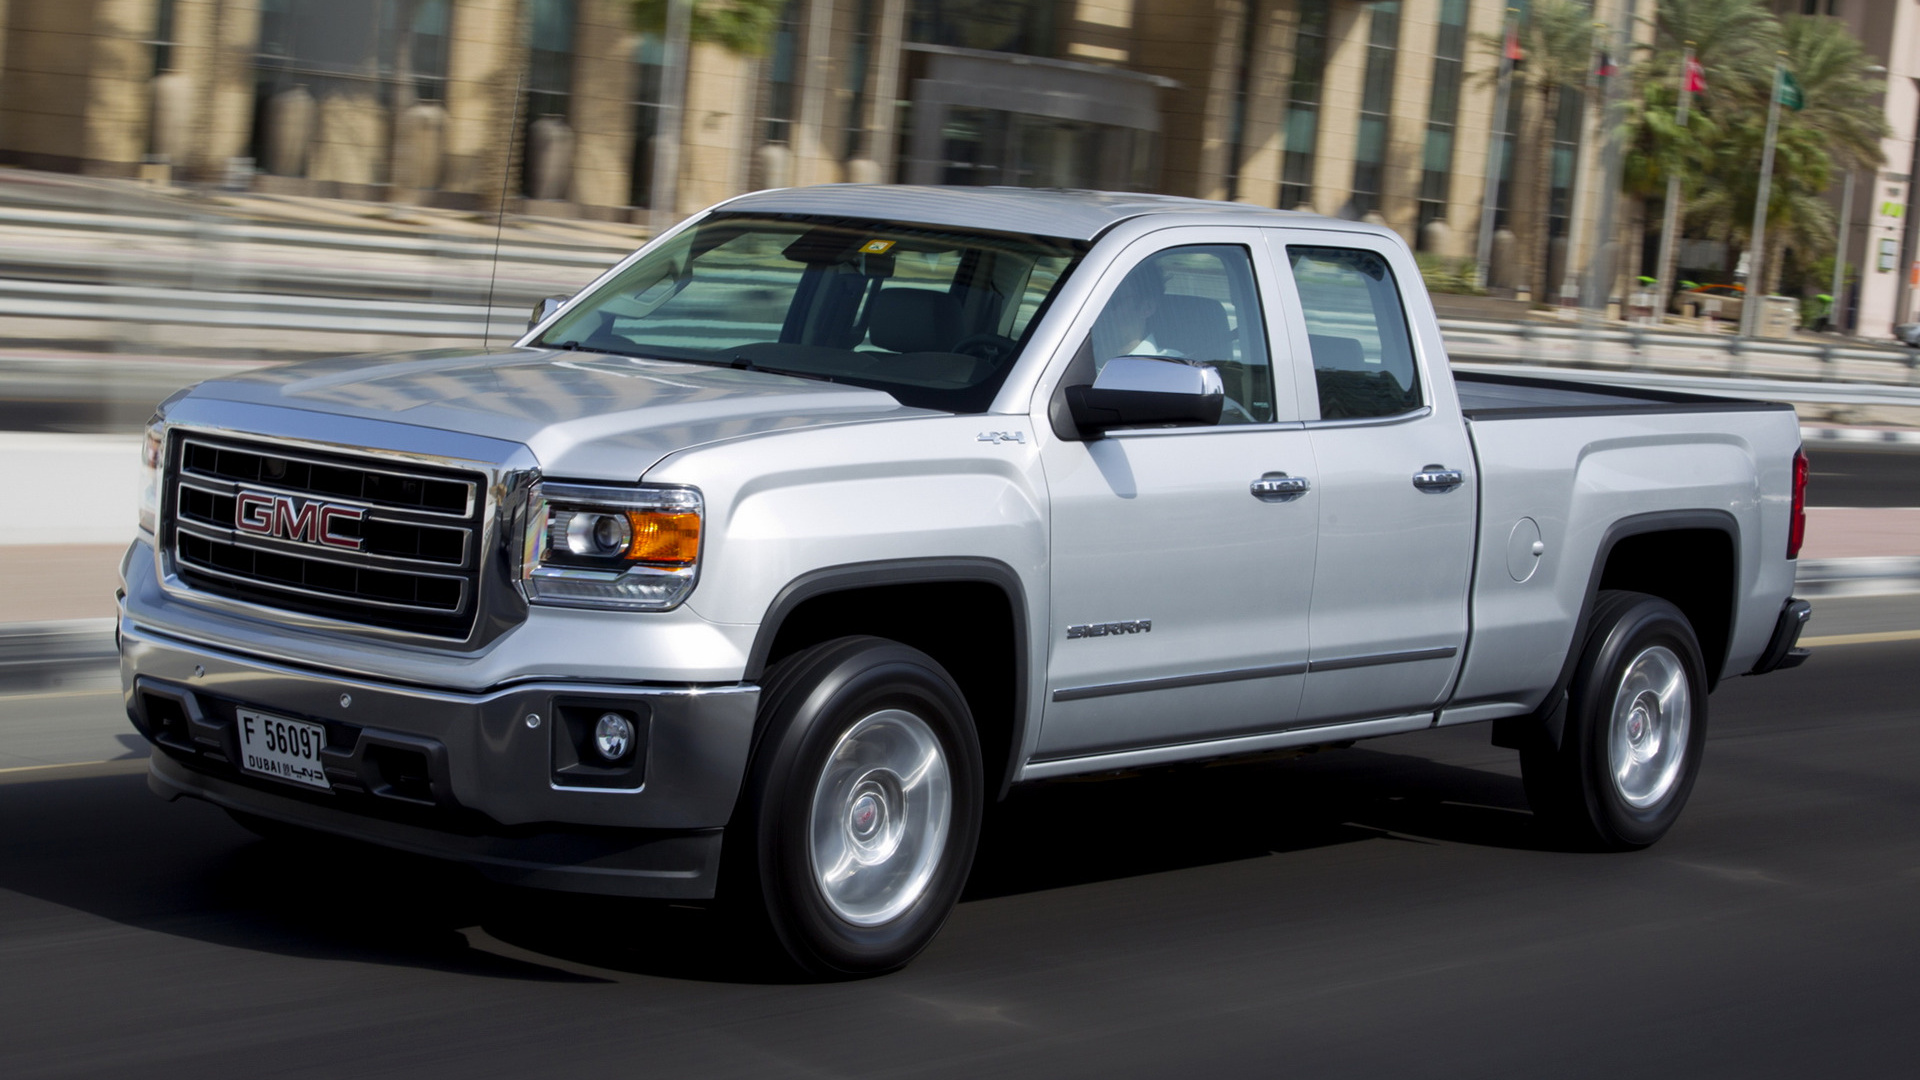 2014 GMC Sierra 1500 SLT Double Cab - Wallpapers and HD ...